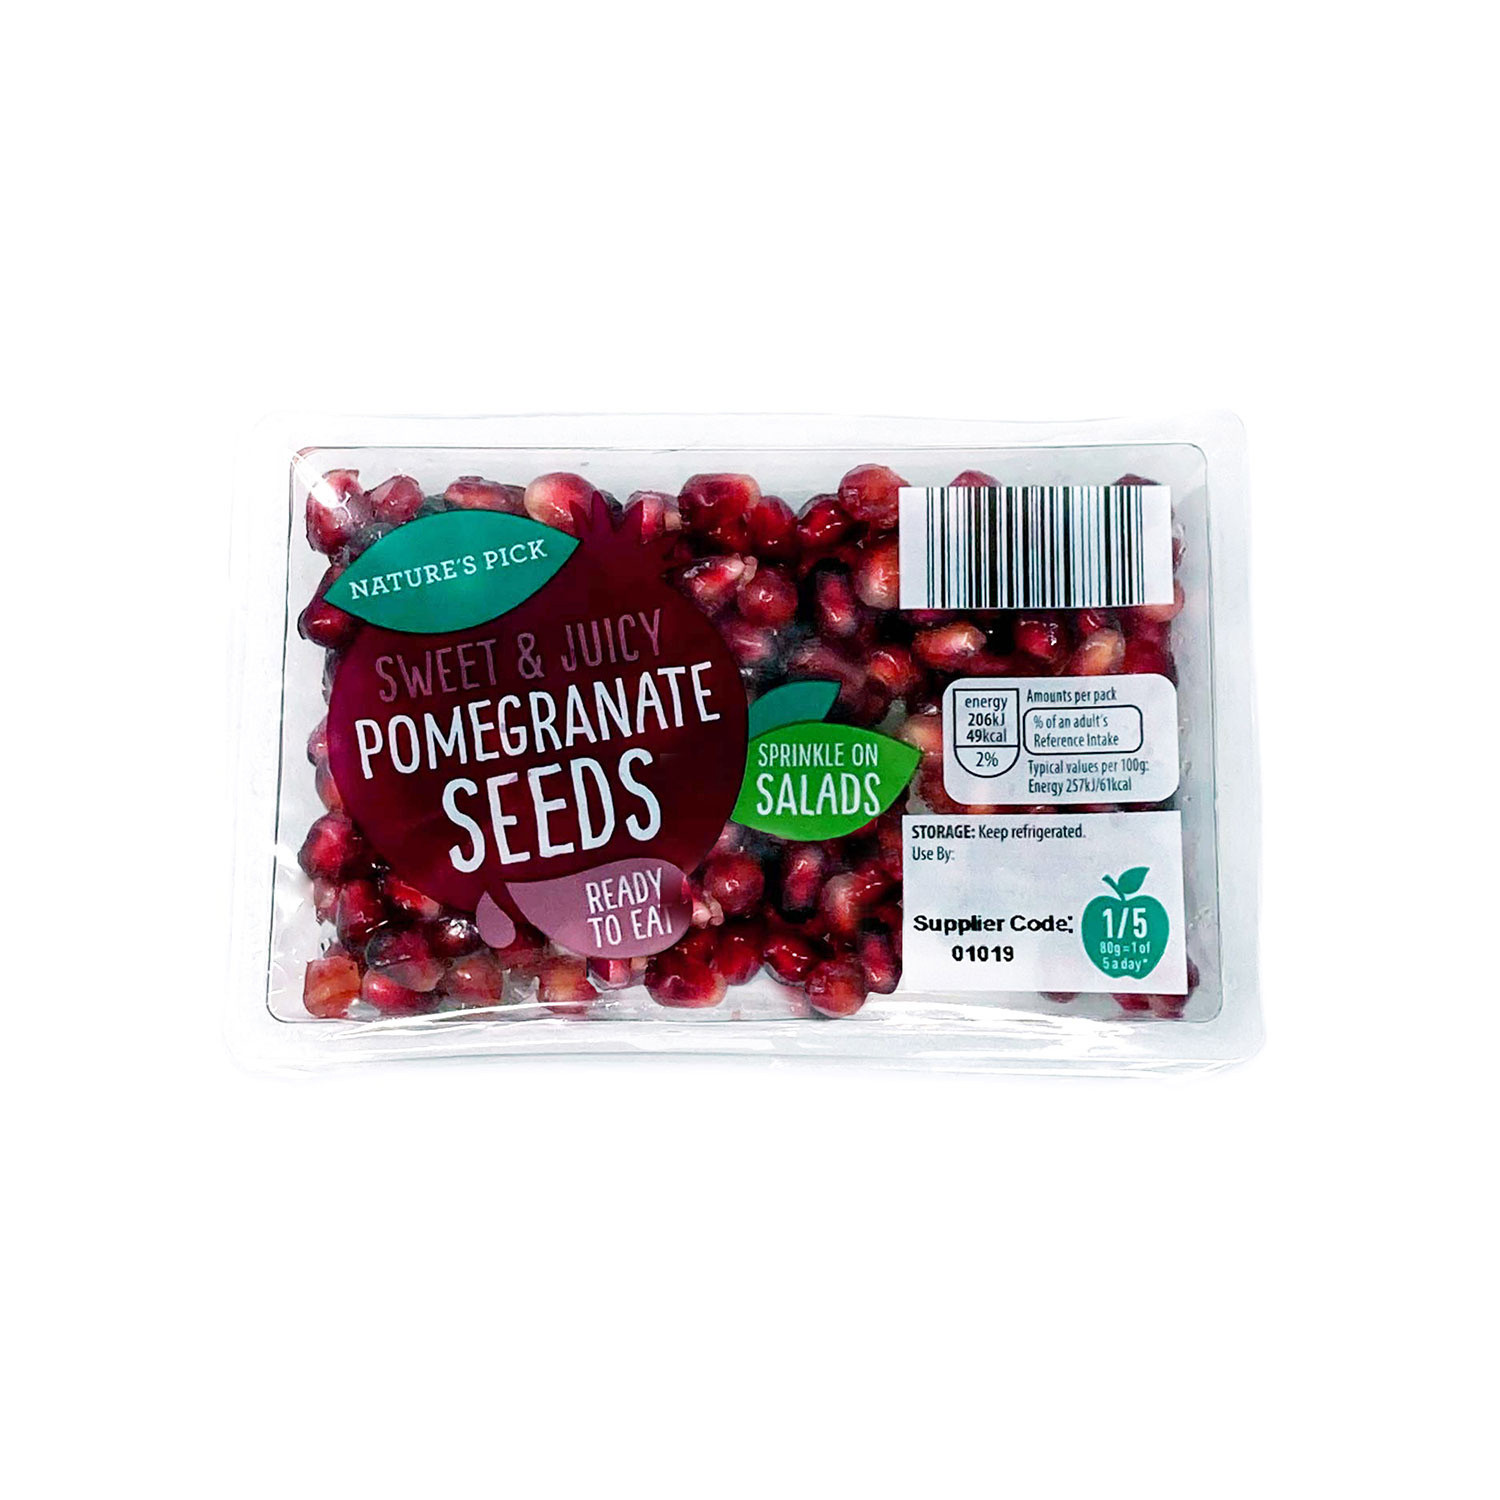 Nature's Pick Pomegranate Seeds 80g